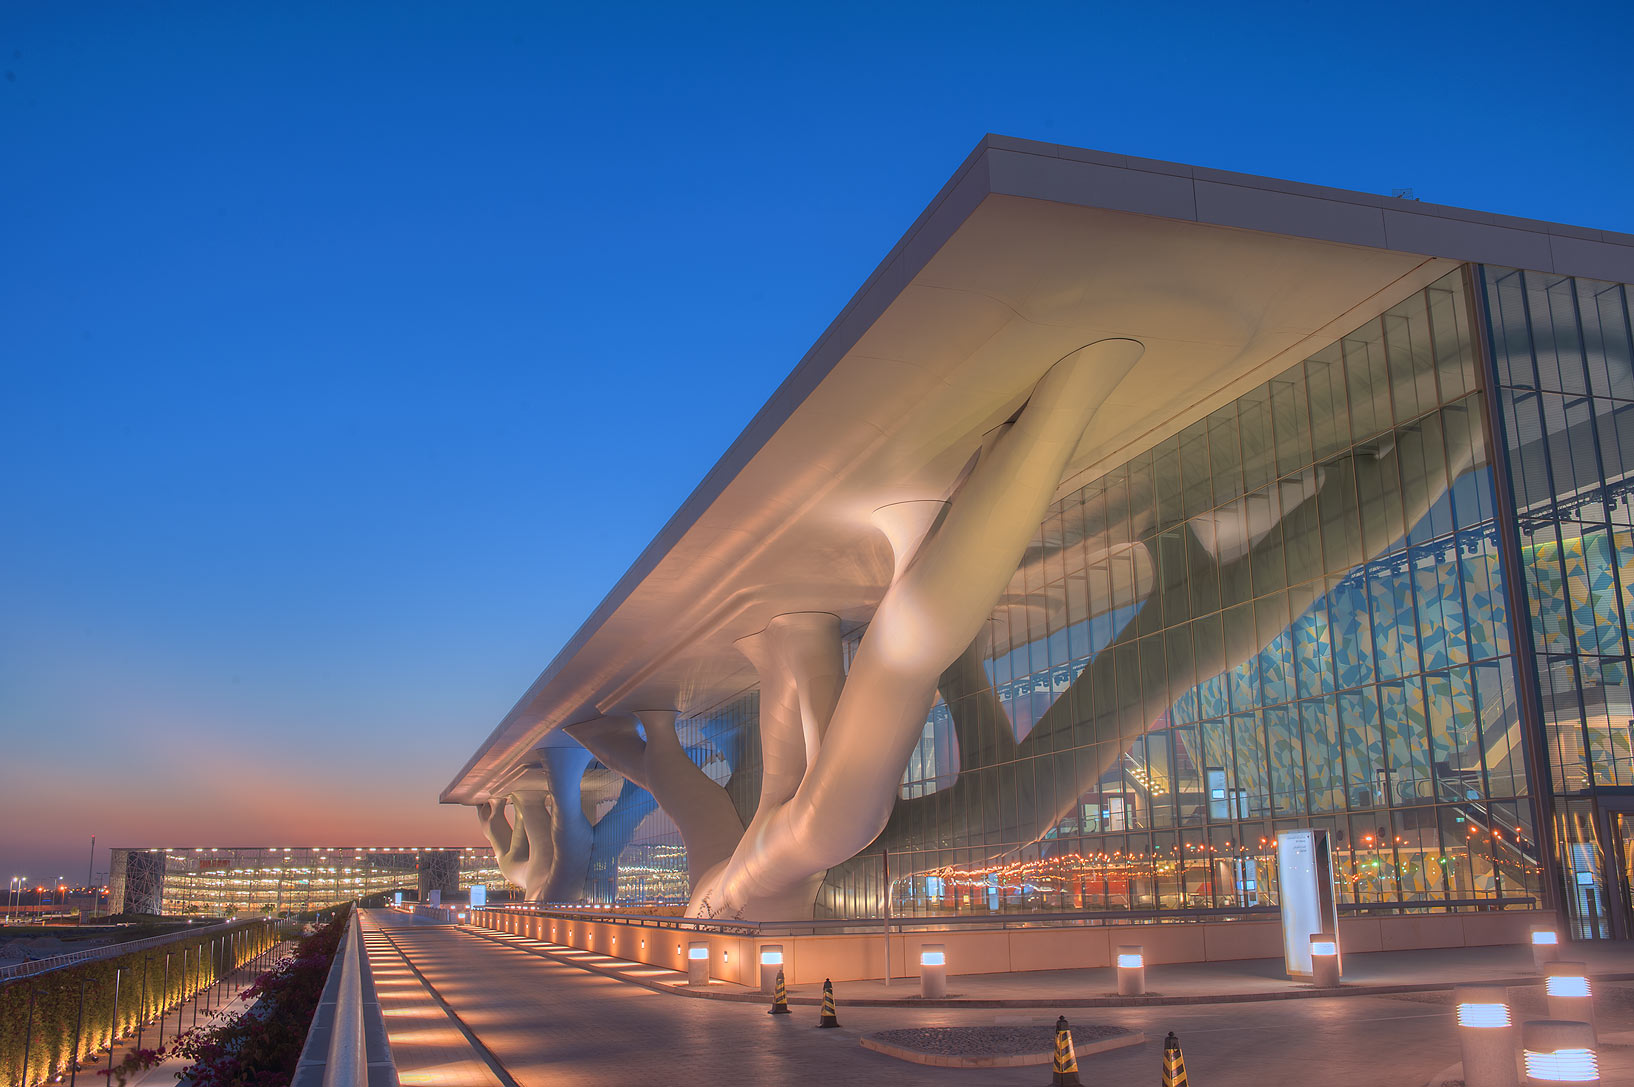 Front side of National Convention Centre (QNCC) at dusk. Doha, Qatar